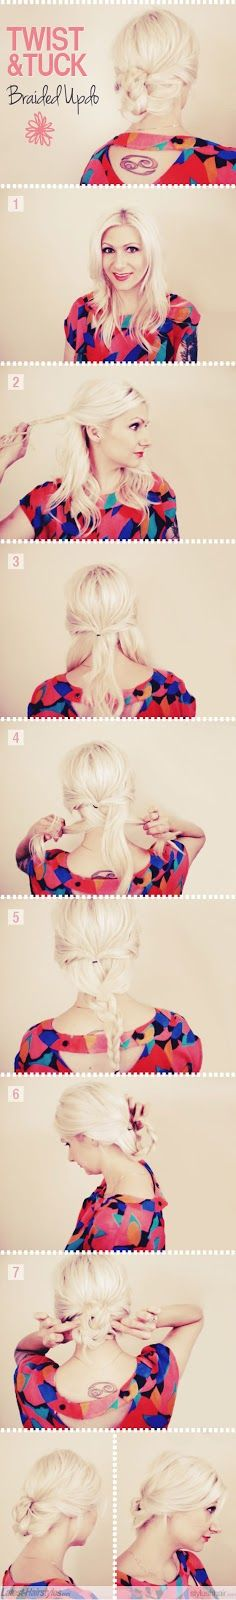 Make A Twist And Tuck Braided Updo For Hair